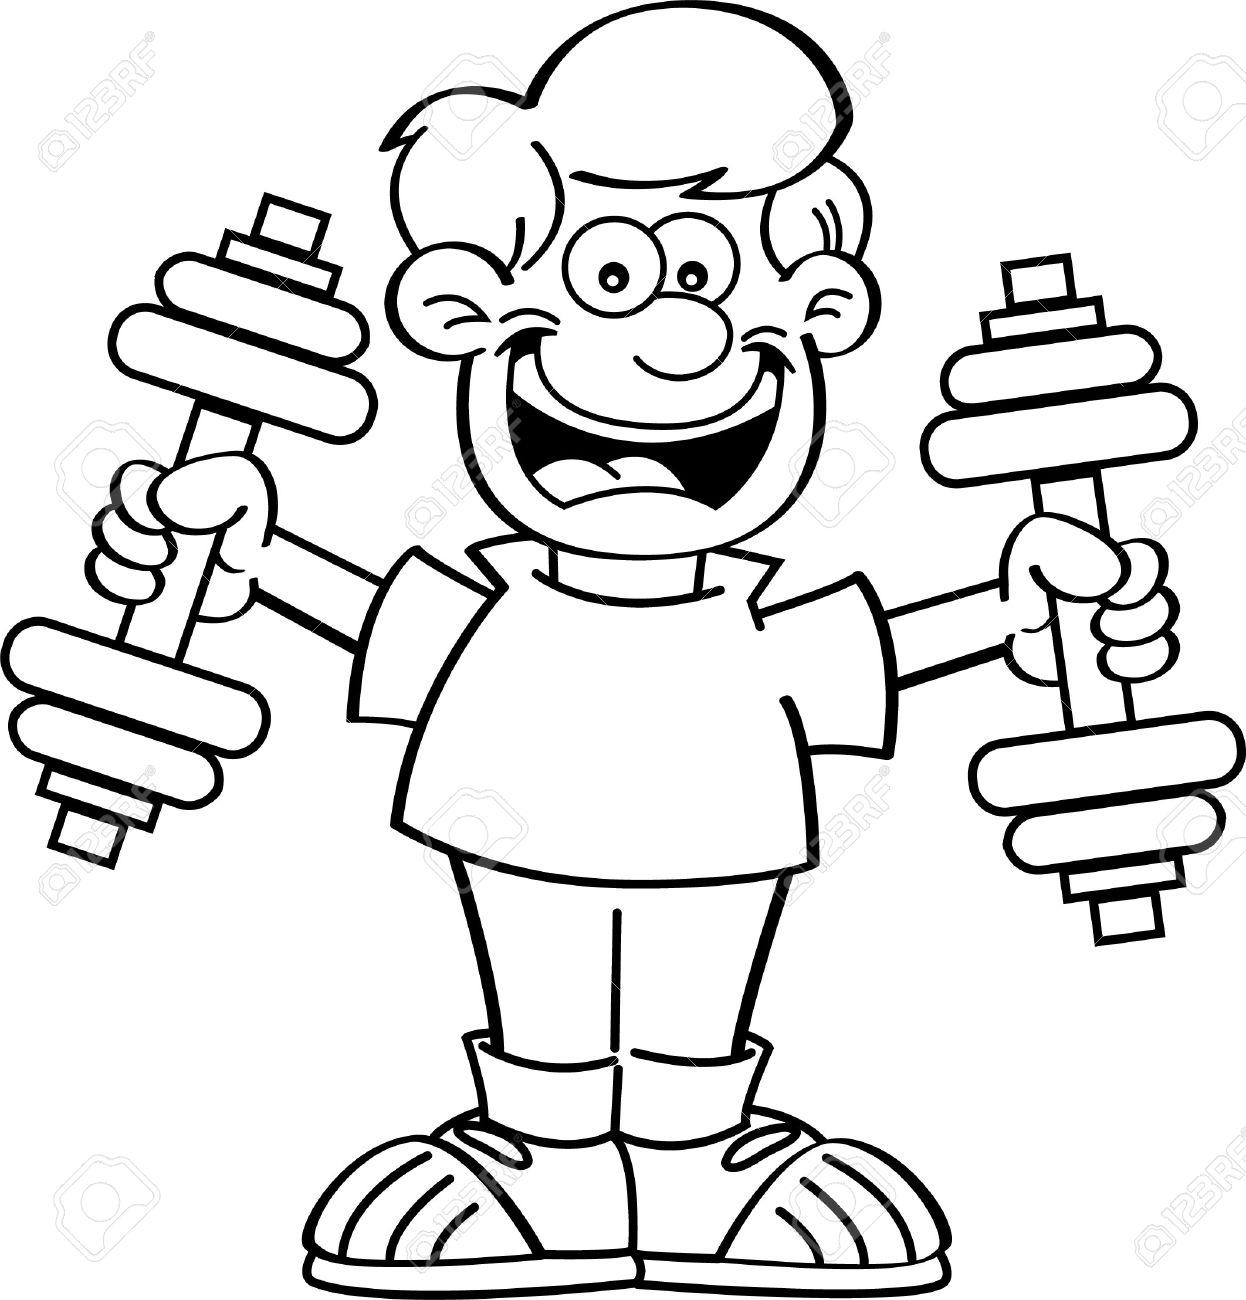 jpg black and white stock Collection of free exercised. Exercise clipart black and white